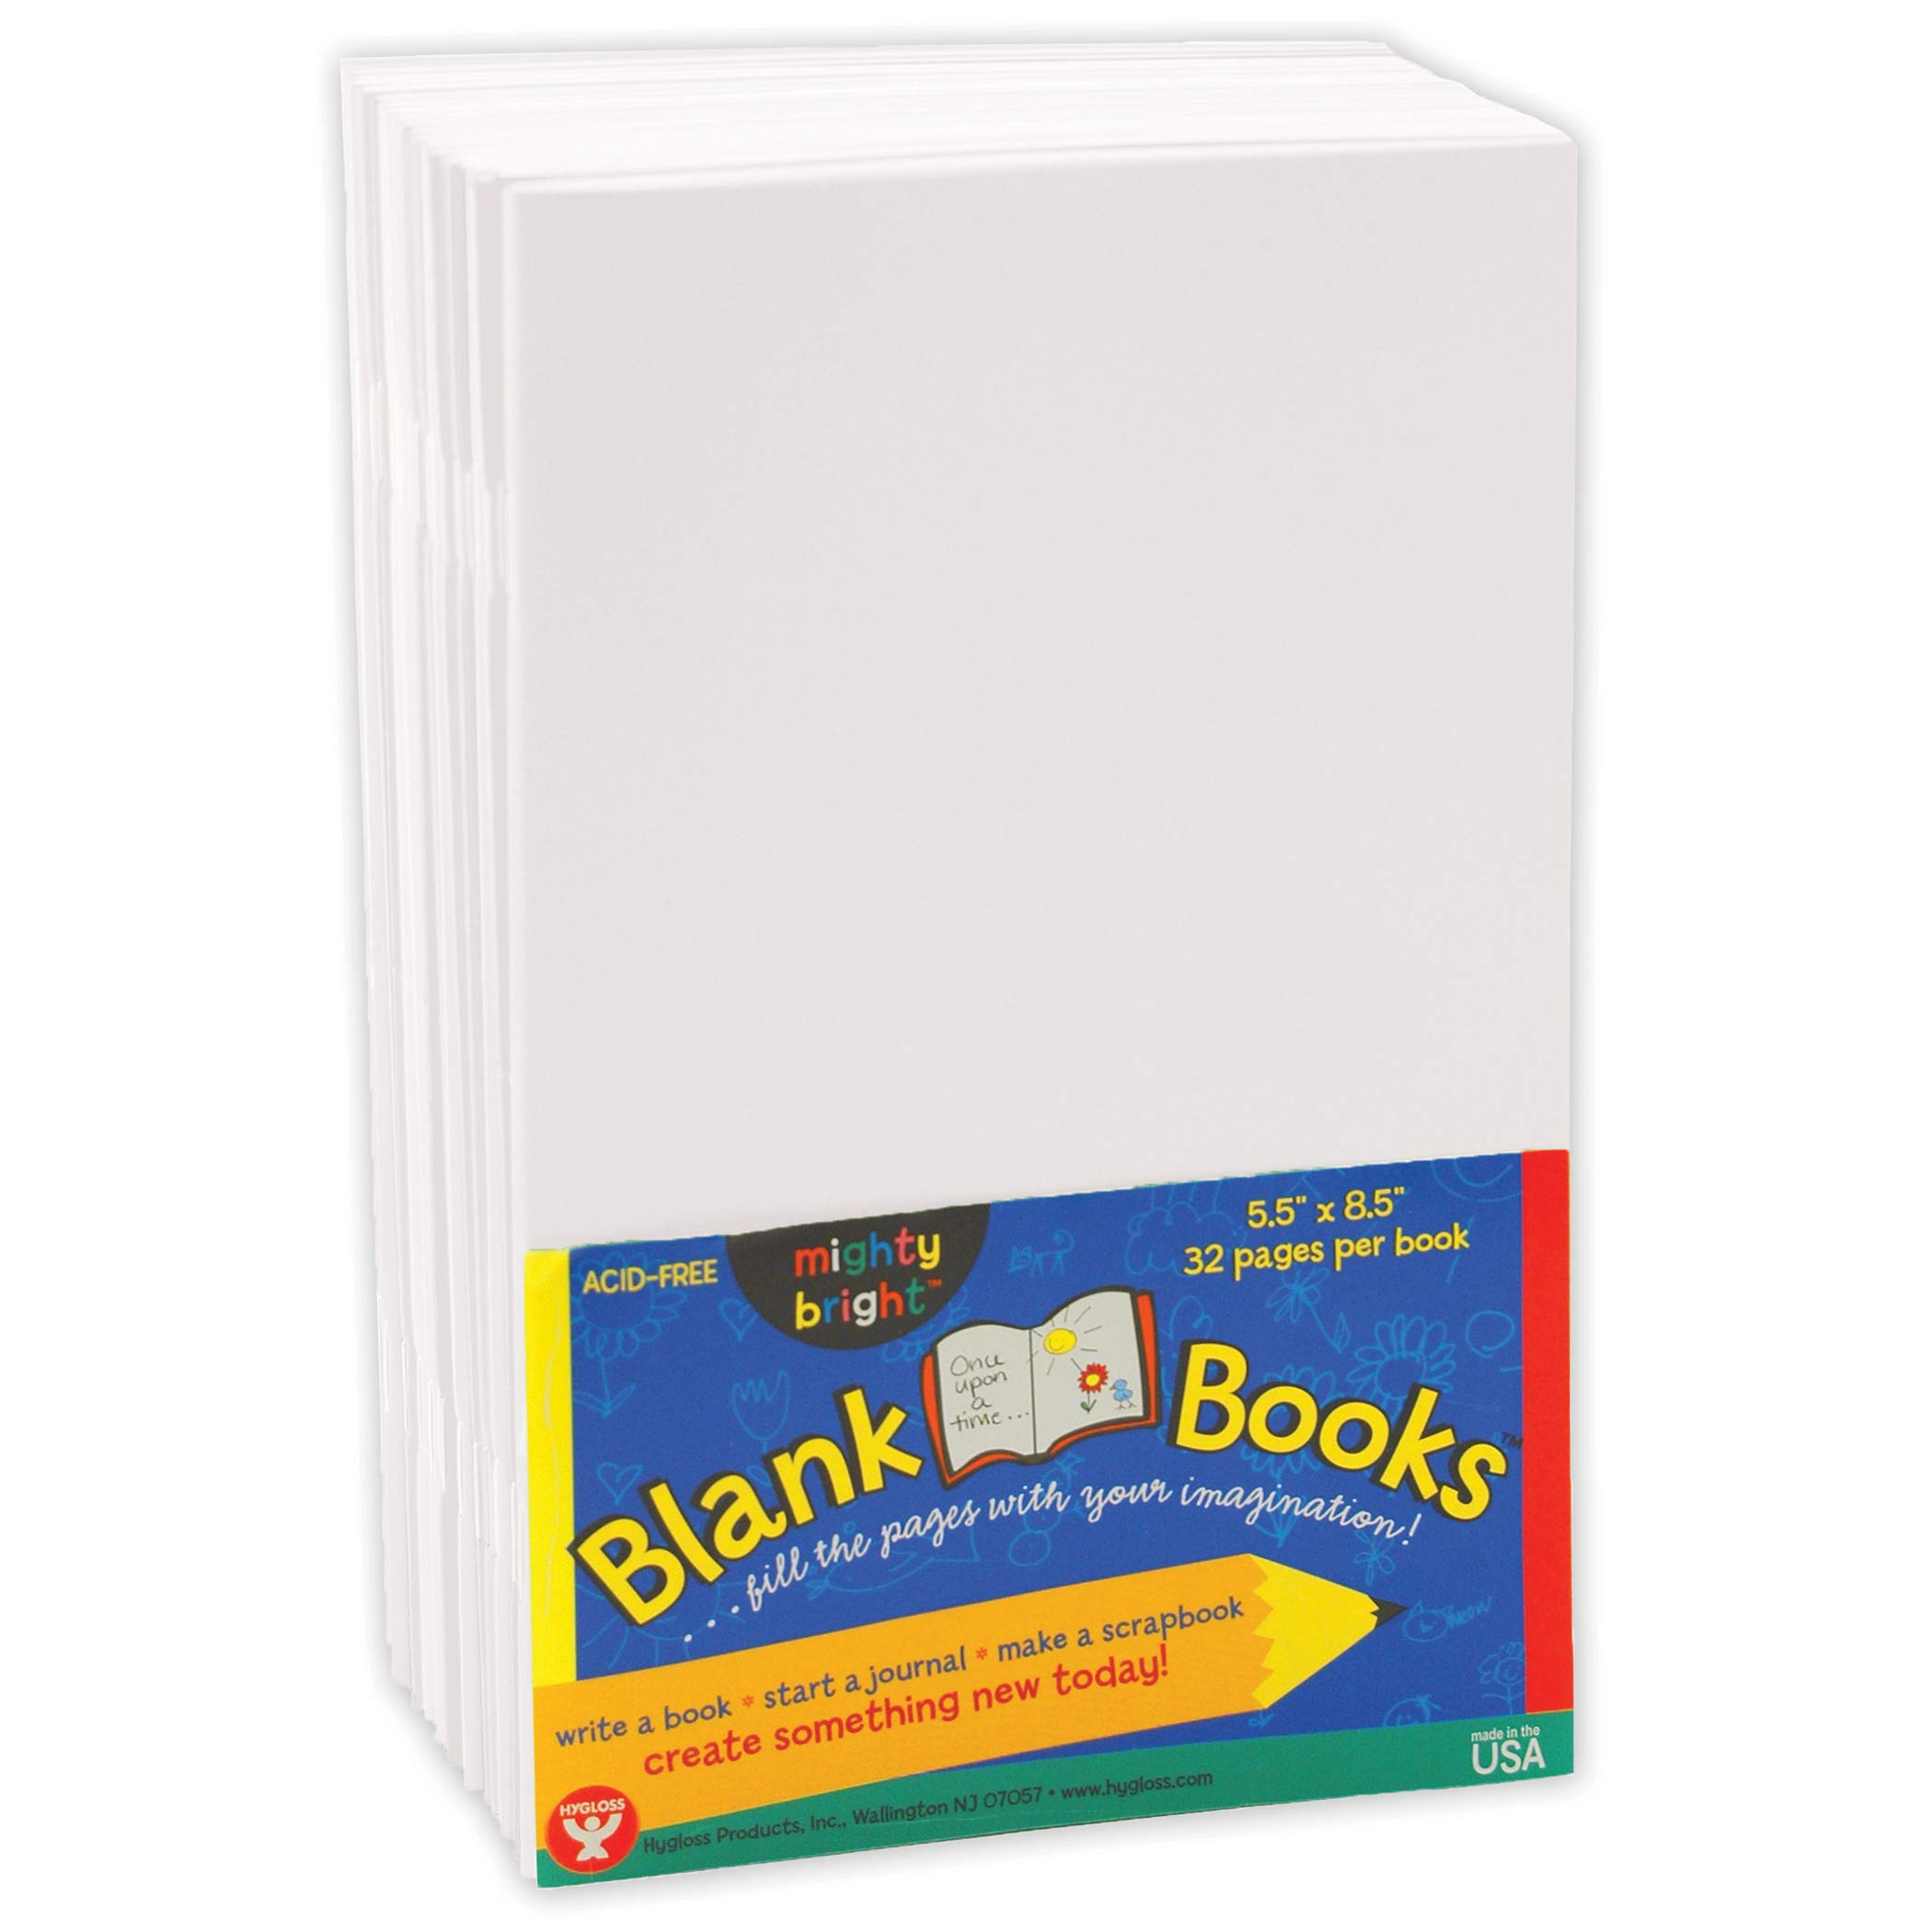 Hygloss Products White Blank Books - Great Books for Journaling, Sketching, Writing & More - Great for Arts & Crafts - 5.5 x 8.5 Inches - 10 Pack by Hygloss